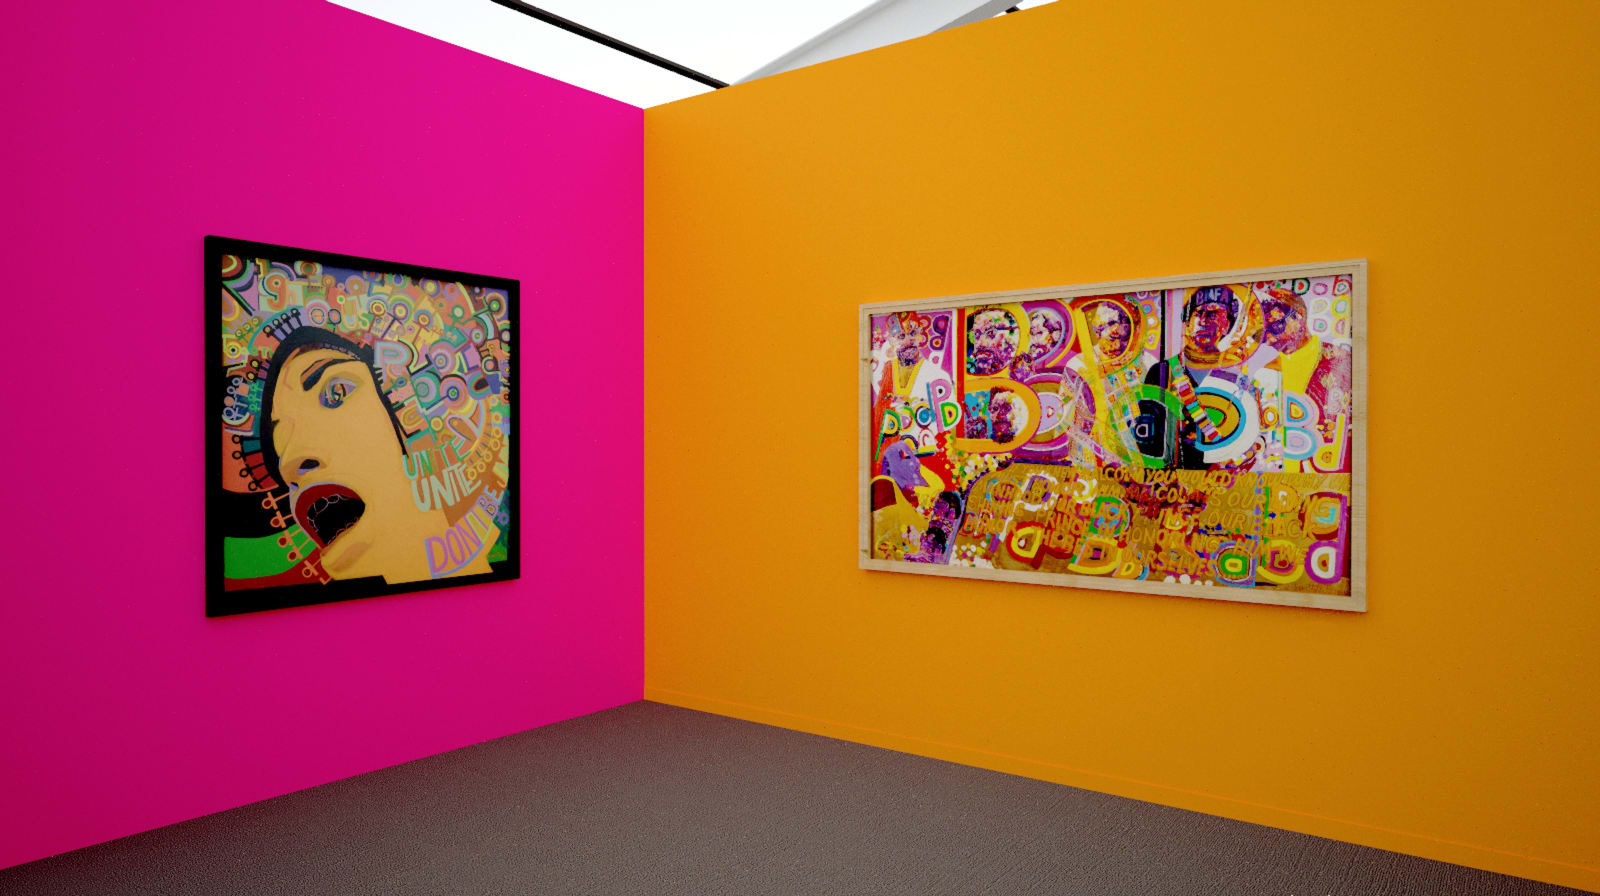 Works by AFRICOBRA members Gerald Williams and Wadsworth Jarrell at Frieze New York (Installation View), 2020, Kavi Gupta